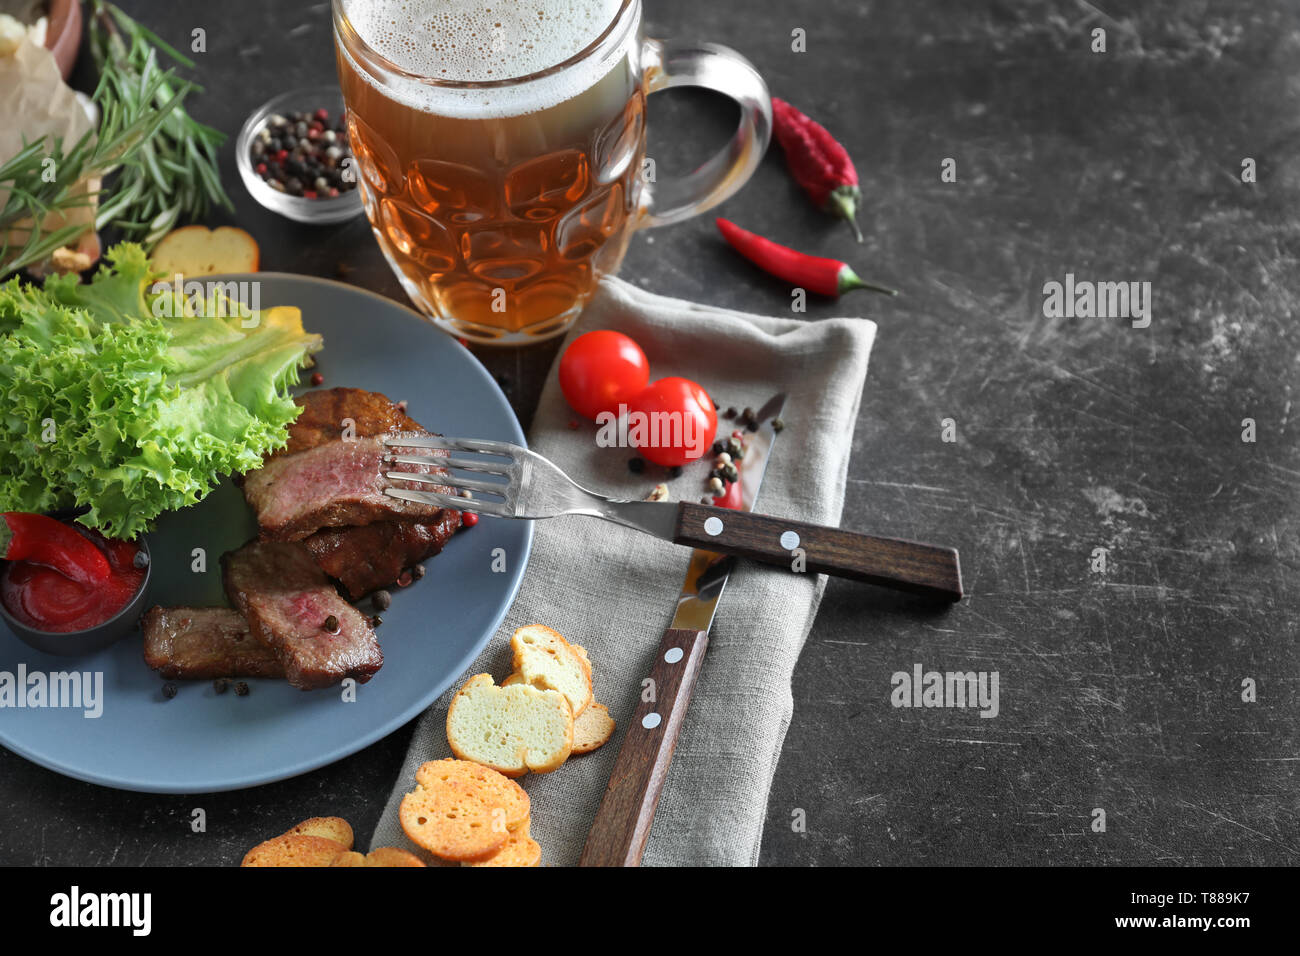 Mug of delicious beer with grilled steak and spices on grey table Stock Photo